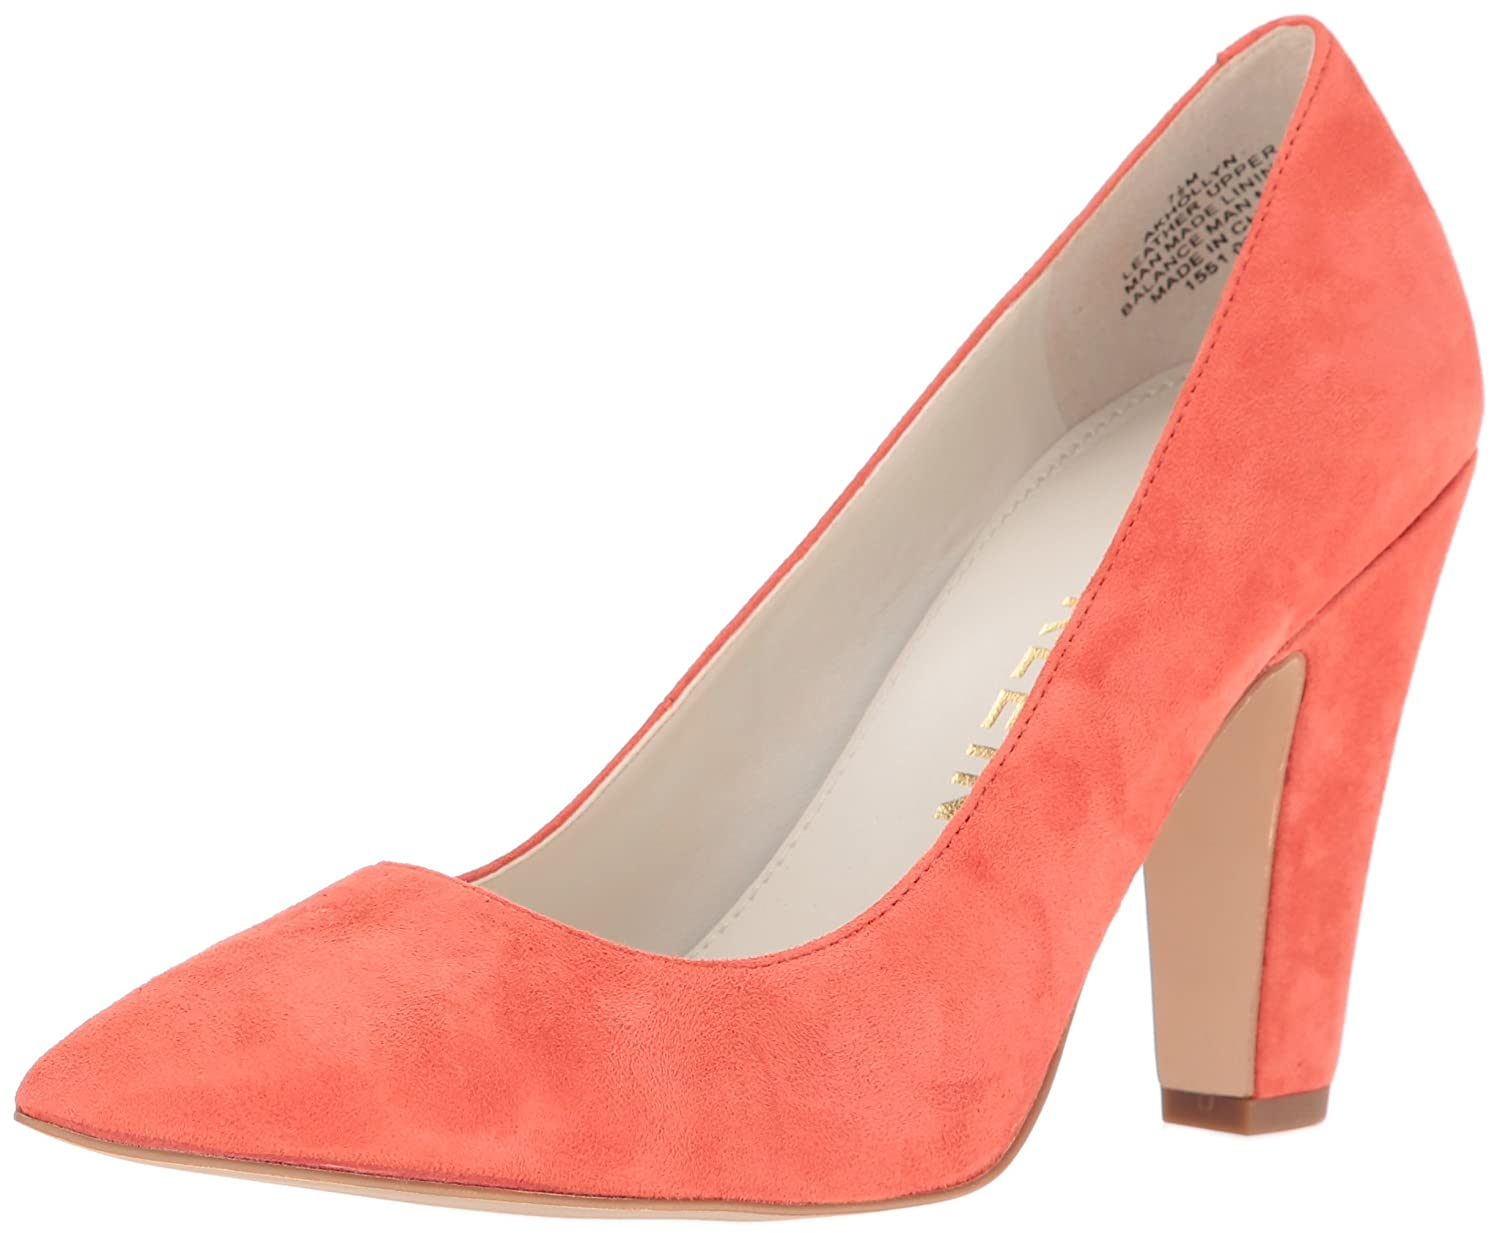 Anne Klein Women's Hollyn Suede Dress Pump B01KPAP61C 8 B(M) US|Orange